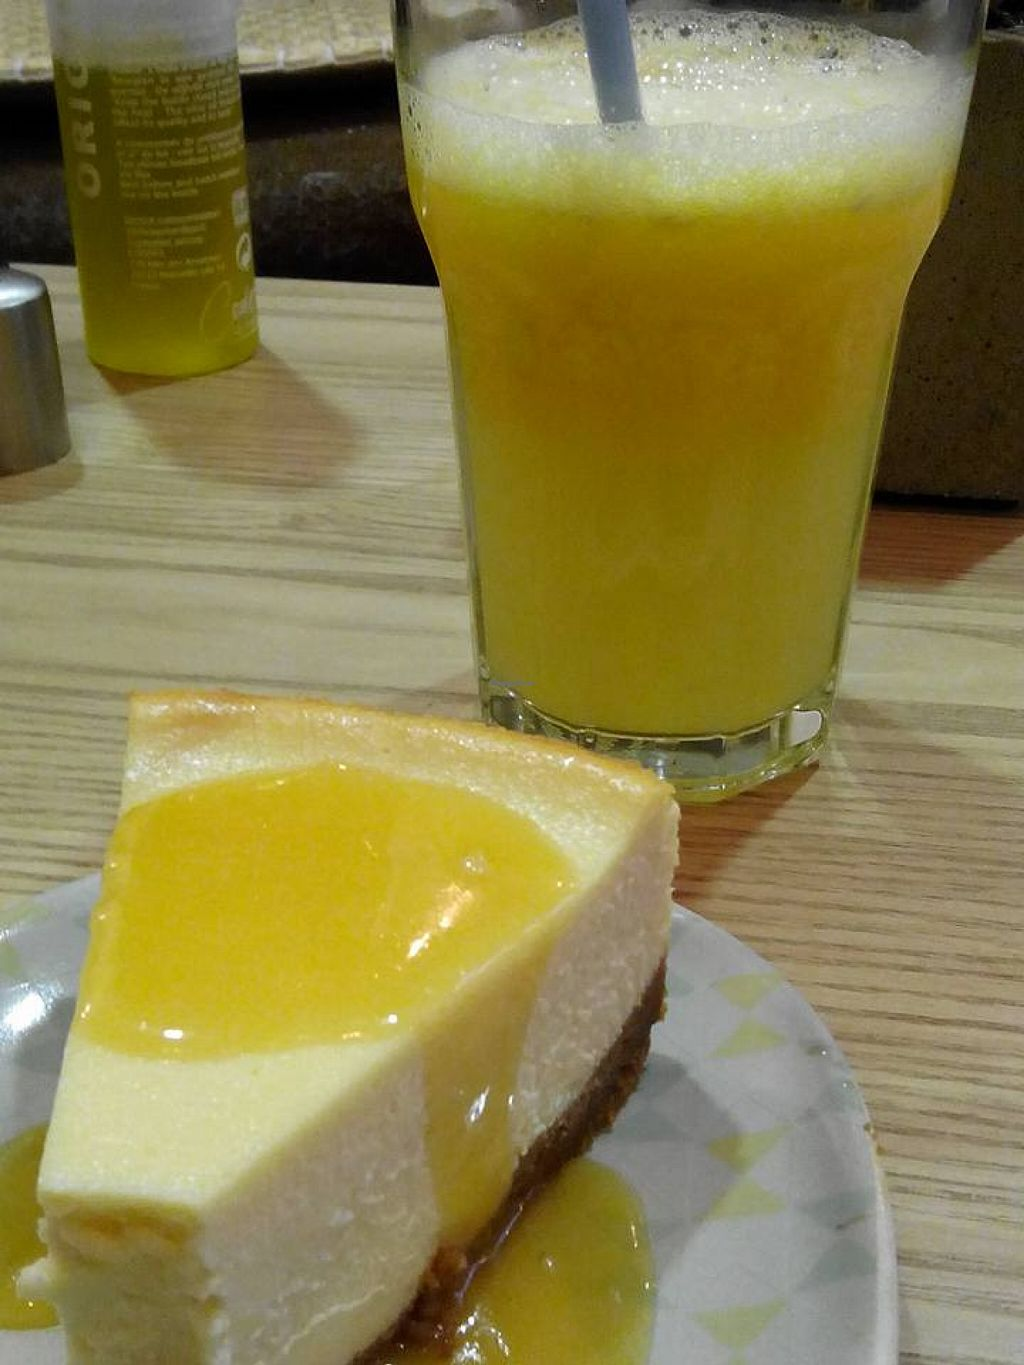 """Photo of La Ronronnerie  by <a href=""""/members/profile/violainous"""">violainous</a> <br/>Cheesecake and orange juice. Home made and tasty <br/> November 29, 2015  - <a href='/contact/abuse/image/66395/126518'>Report</a>"""